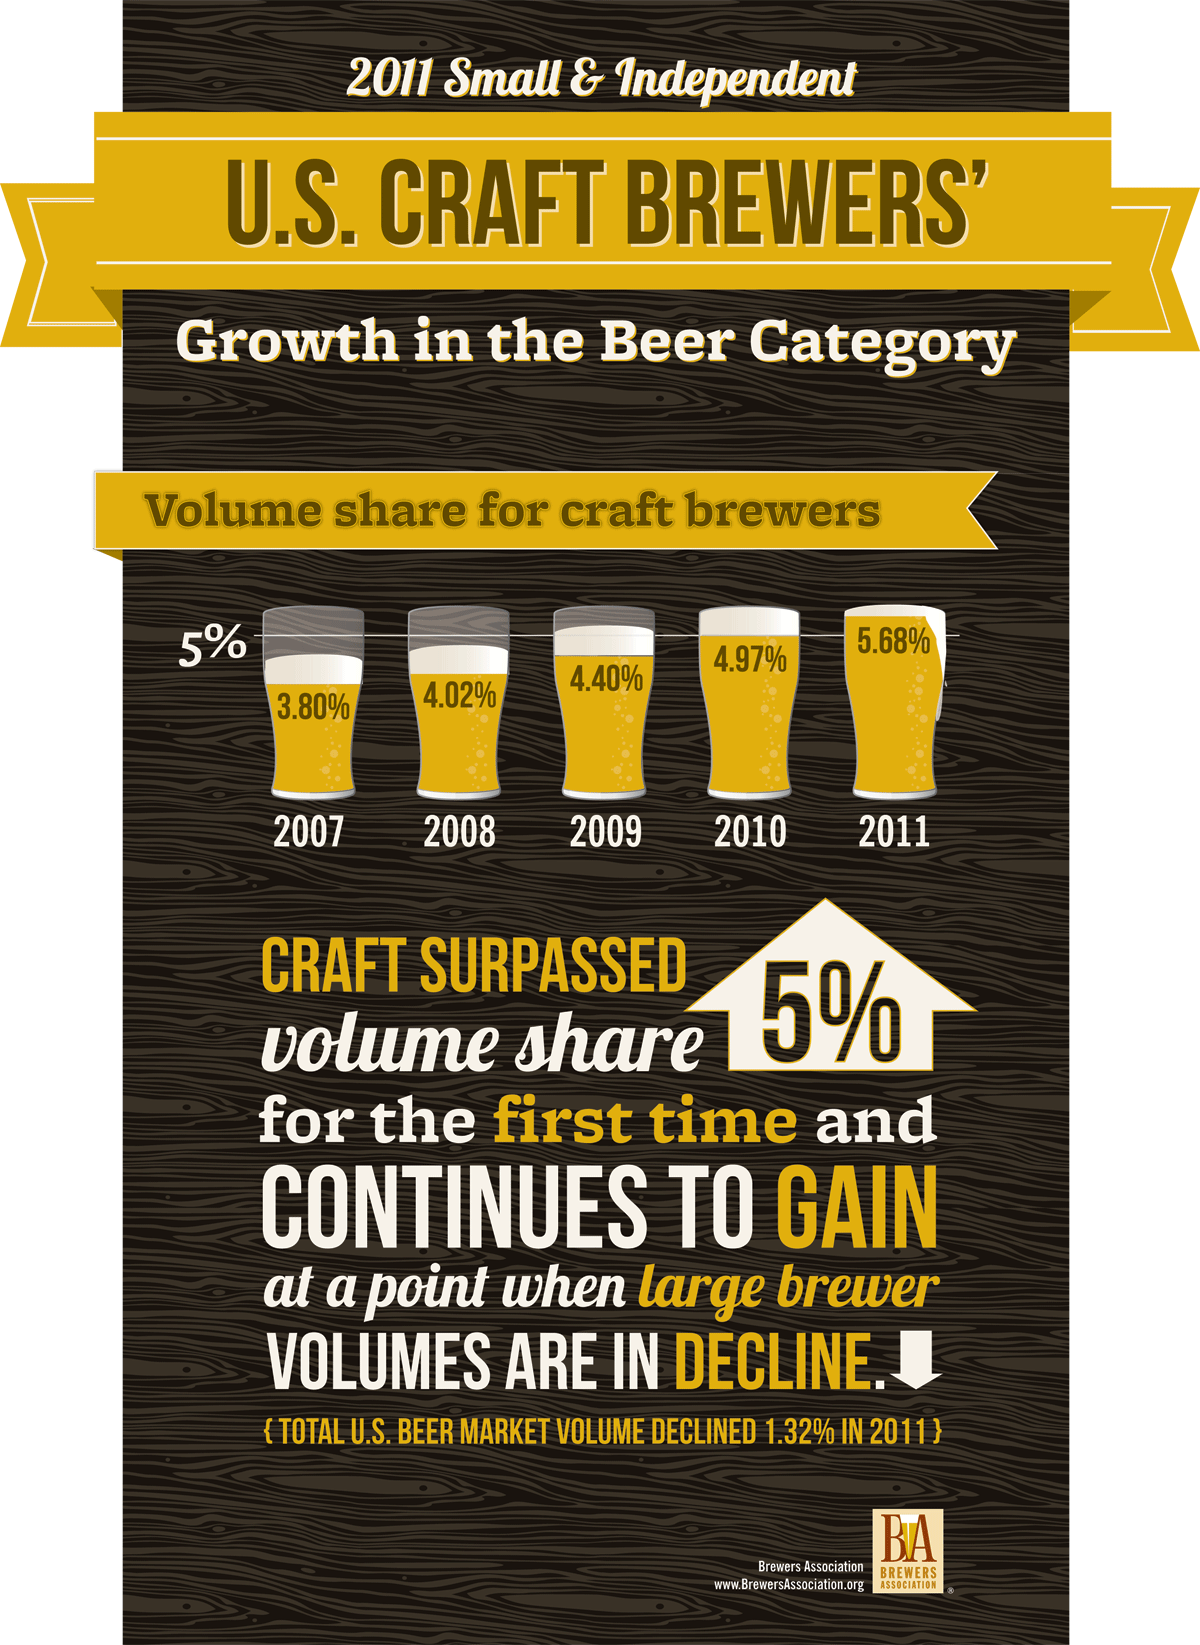 Image courtesy of Brewers Association